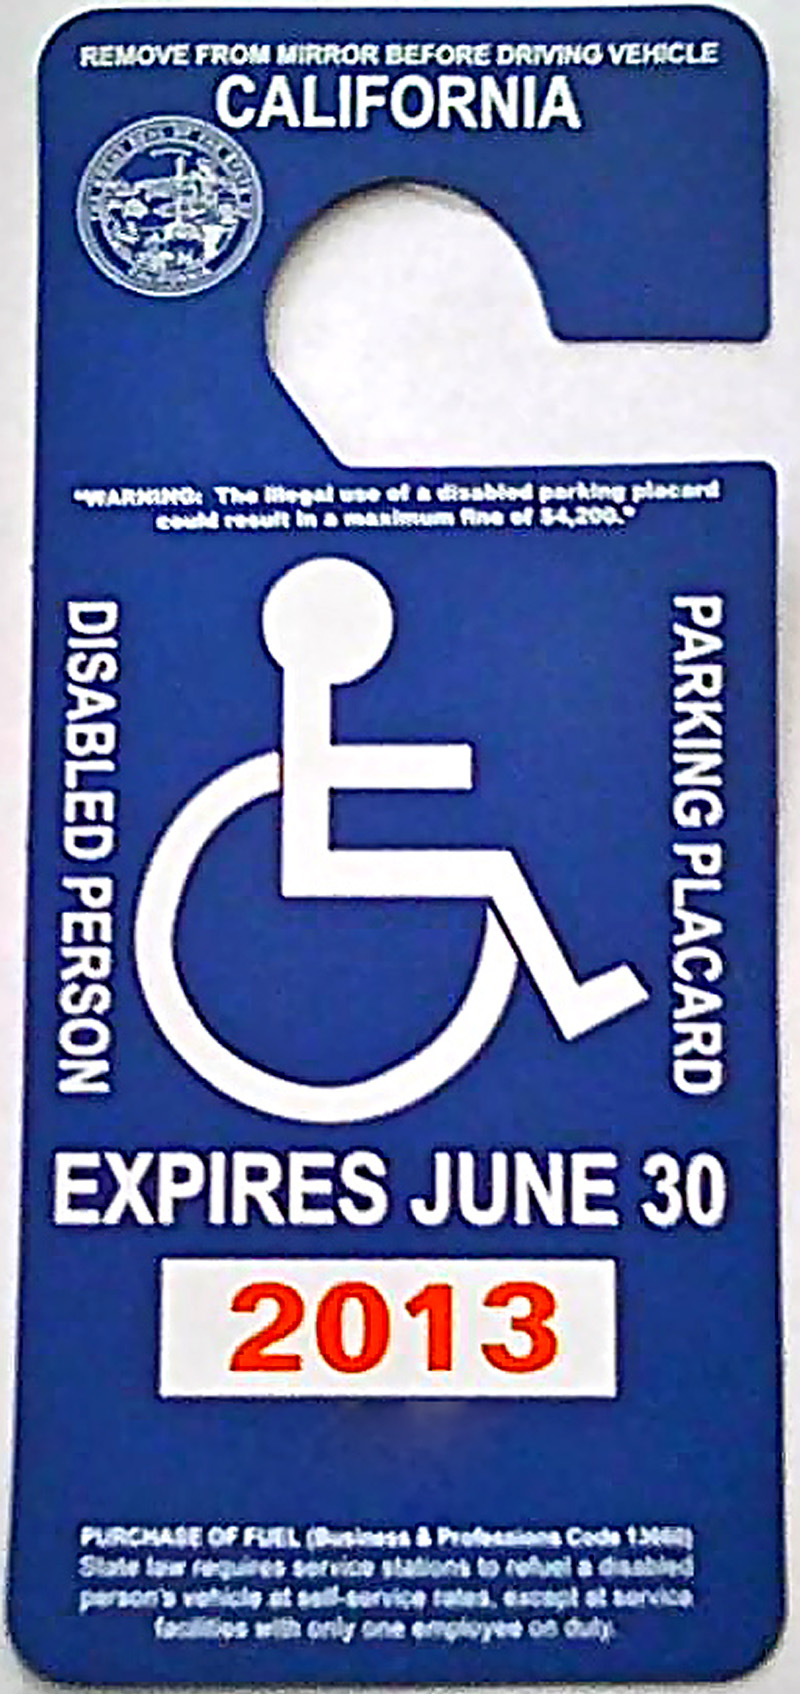 How Do I Get A Handicap Sticker For My Car